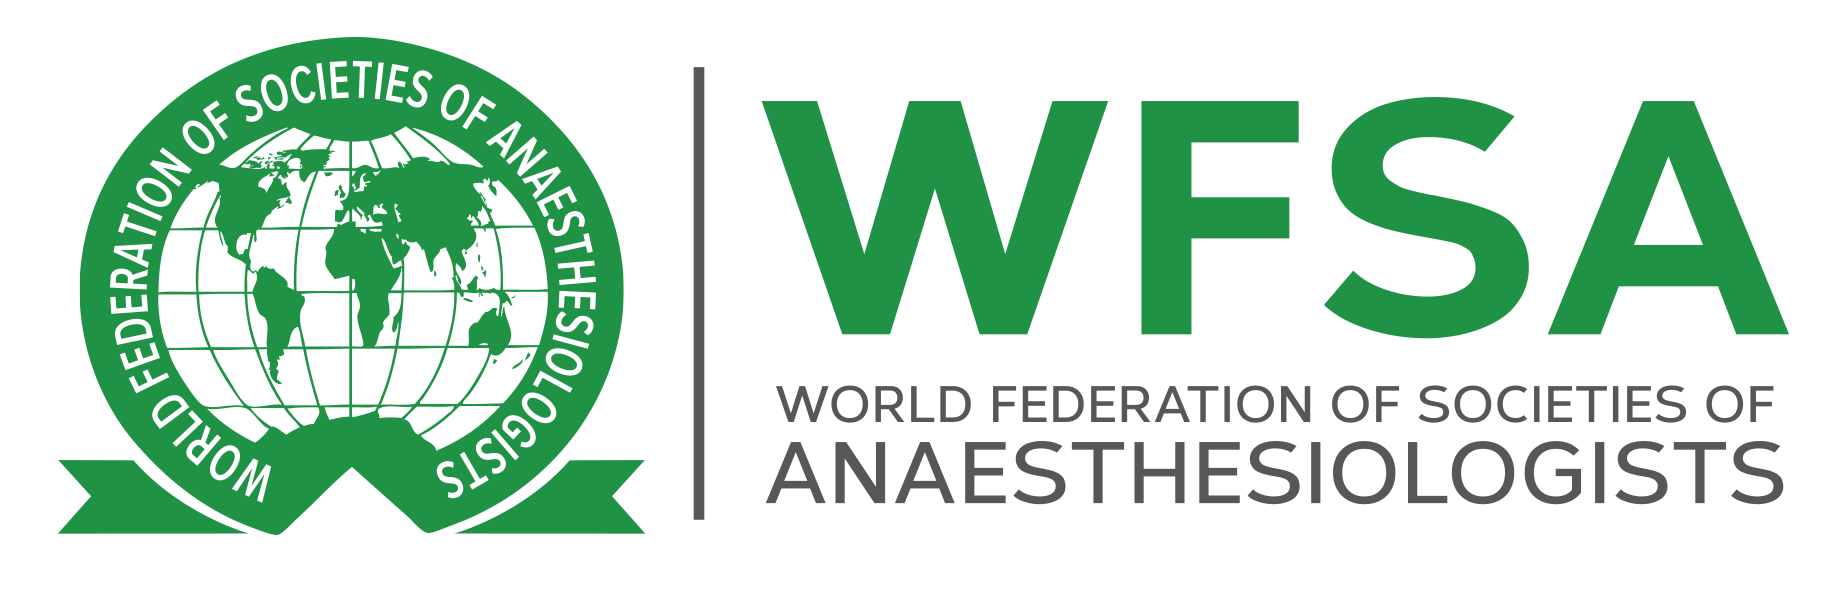 04 - World Federation of Societies of Anaesthesiologists (WFSA) Logo PNG.png